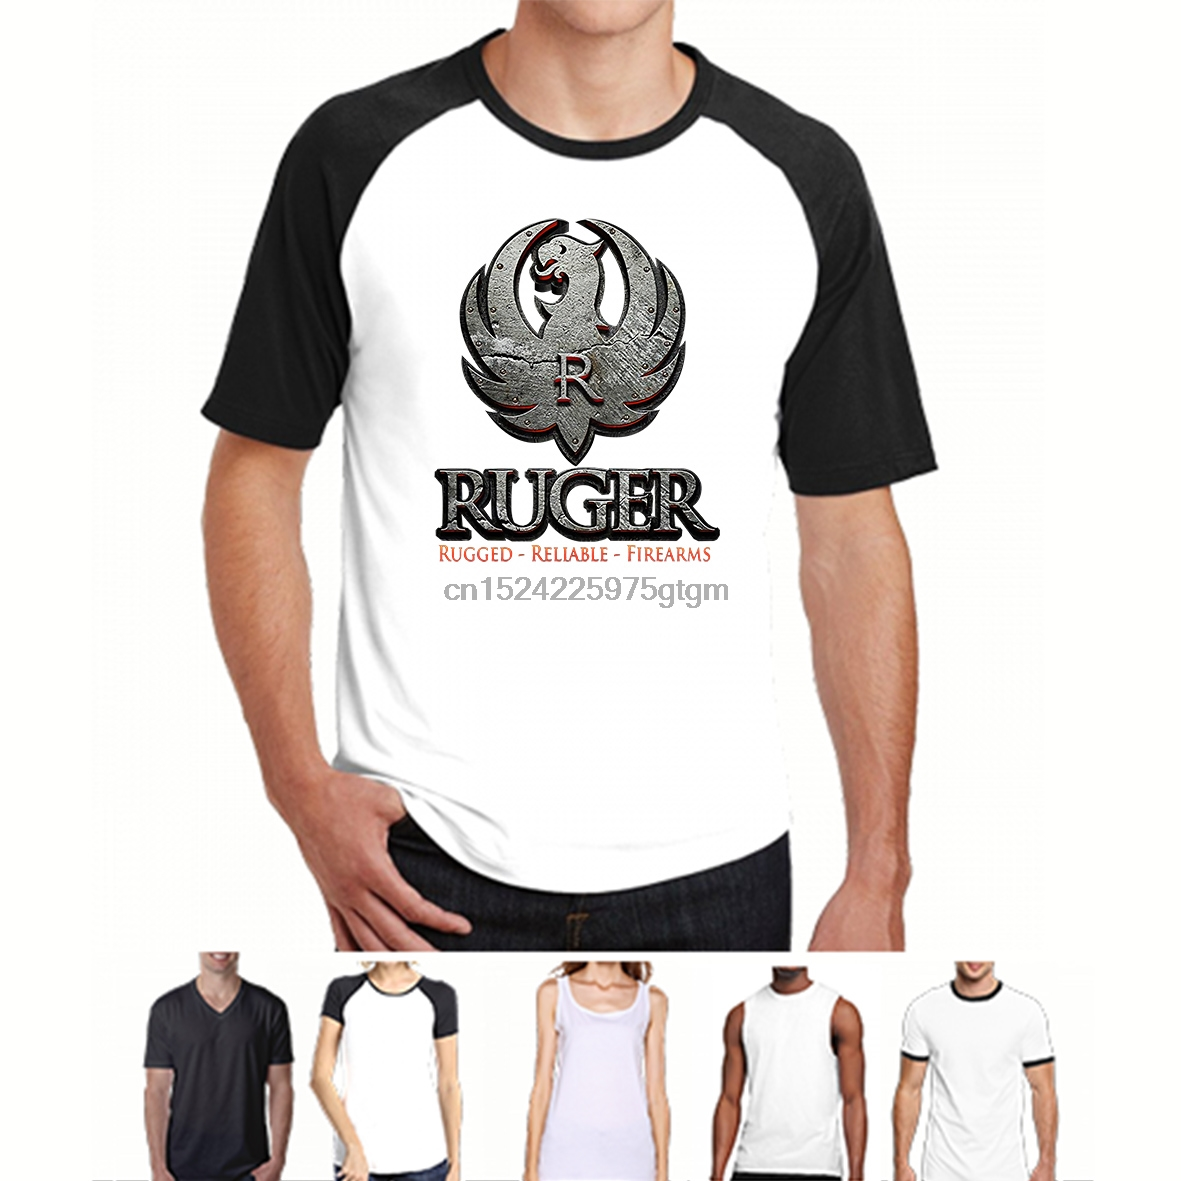 bca07bd4f Buy ruger shirt and get free shipping on AliExpress.com